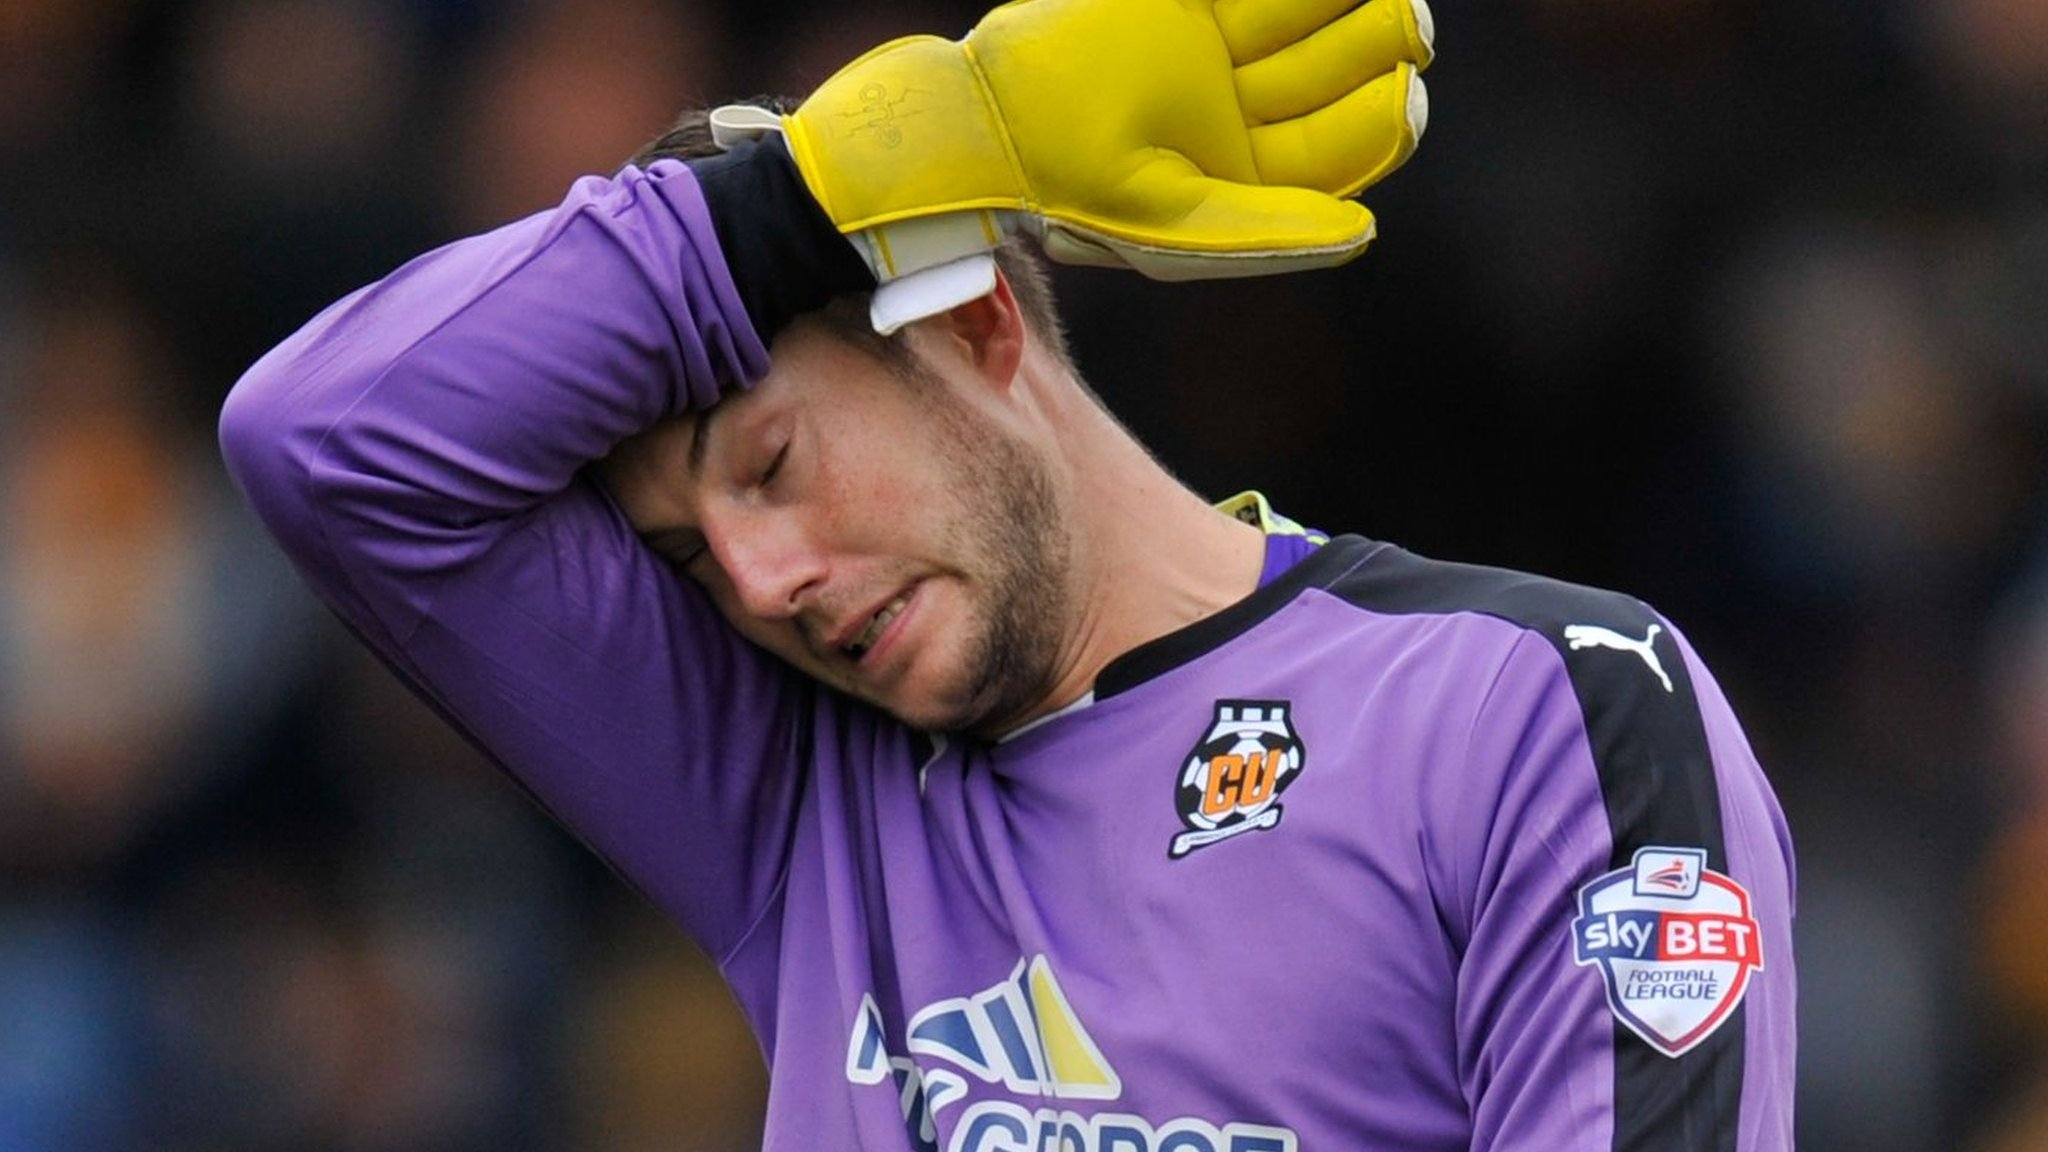 Braintree Town - the club who have had eight goalkeepers this season